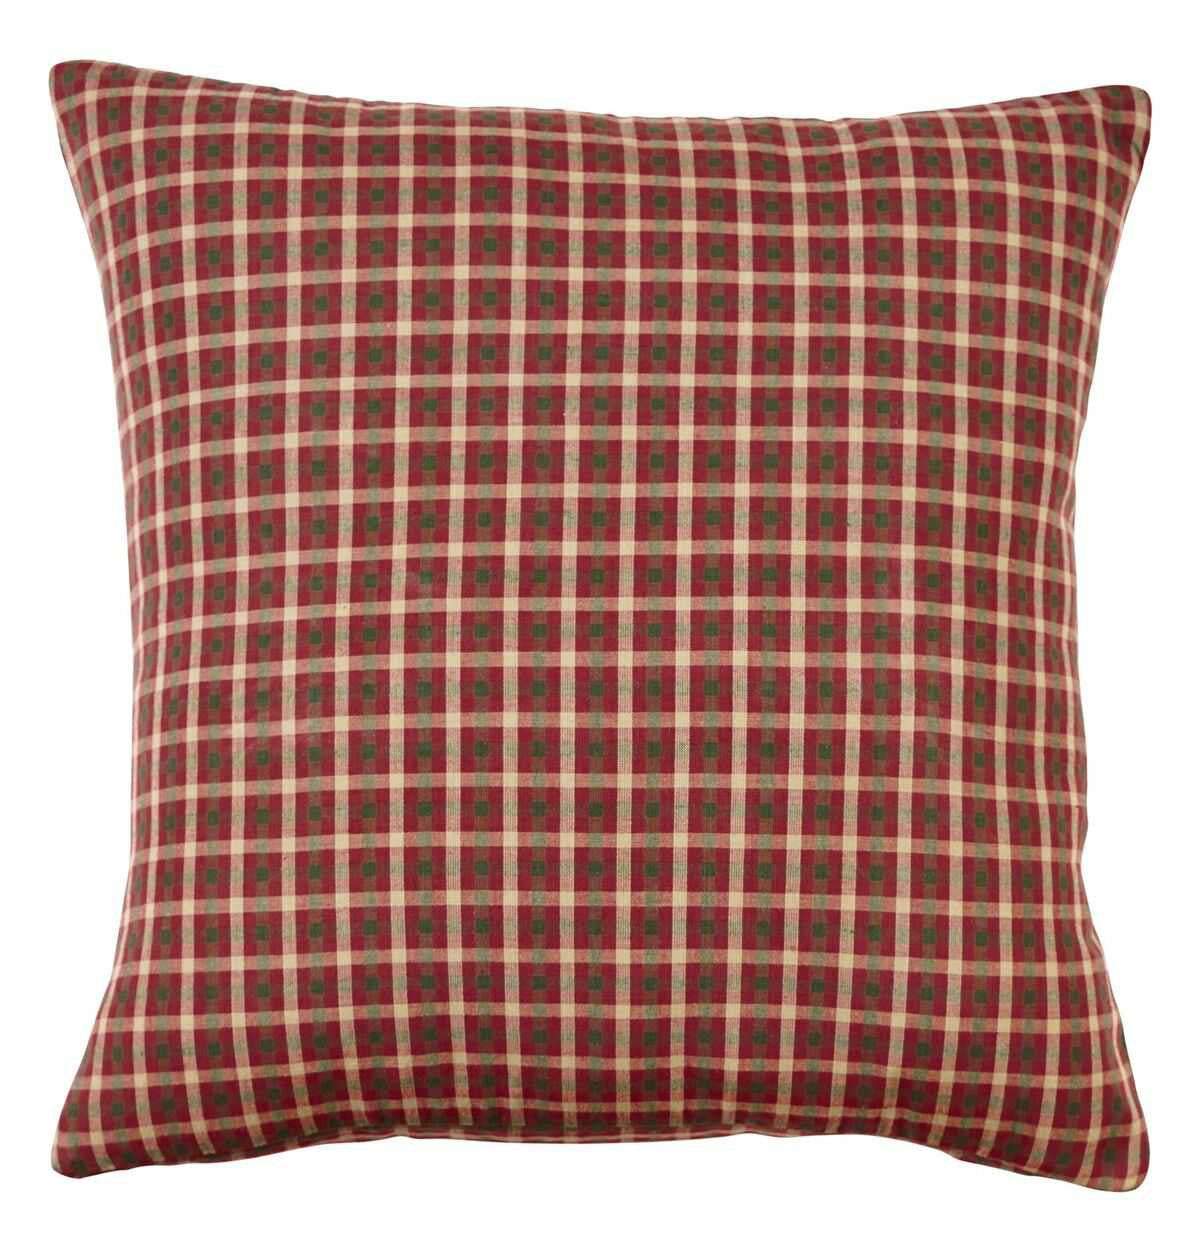 Plymouth Red Plaid Pillow Cover - Allysons Place